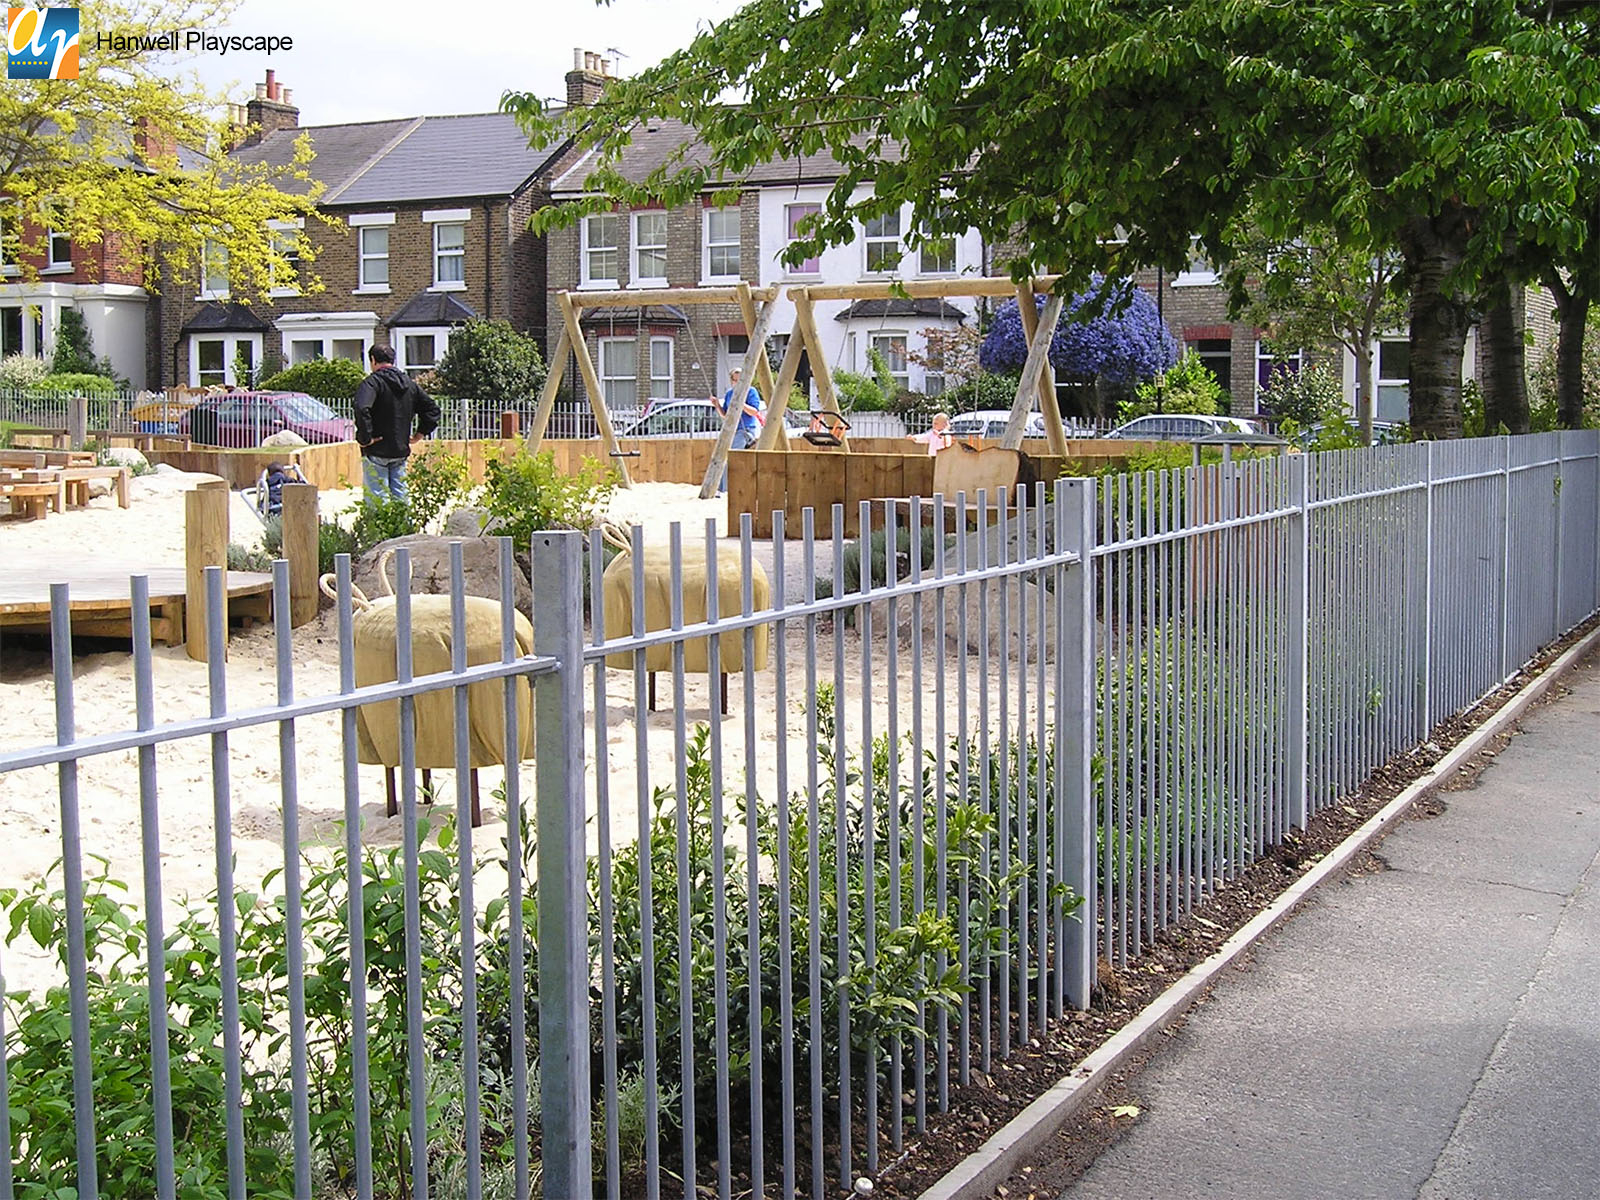 Hanwell playscape standard vertical bar railings